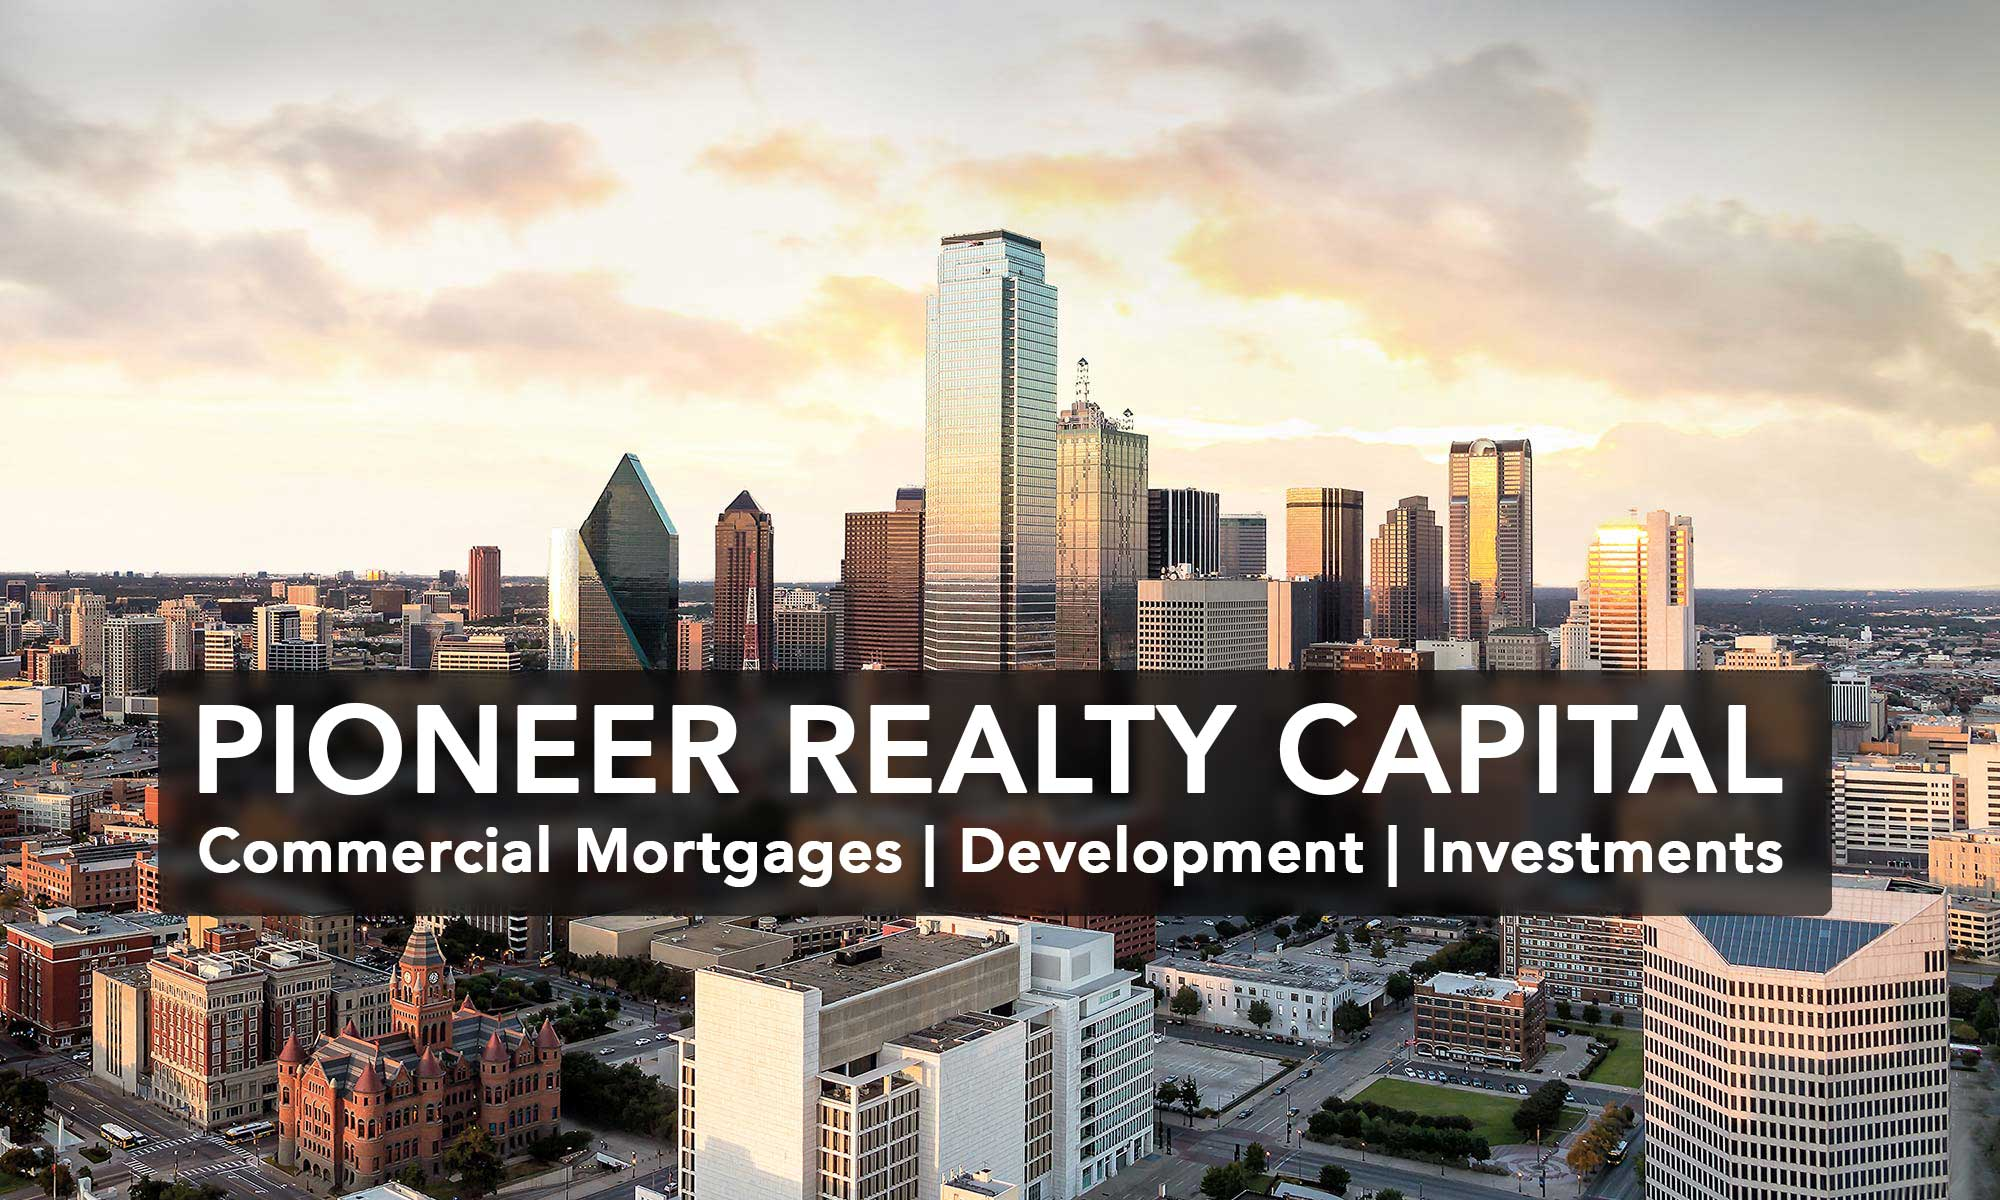 Pioneer Realty Capital Commercial Real Estate Advisory Financing Mortgage Loans Arlington Dallas Fort Worth Texas 682 518 9416